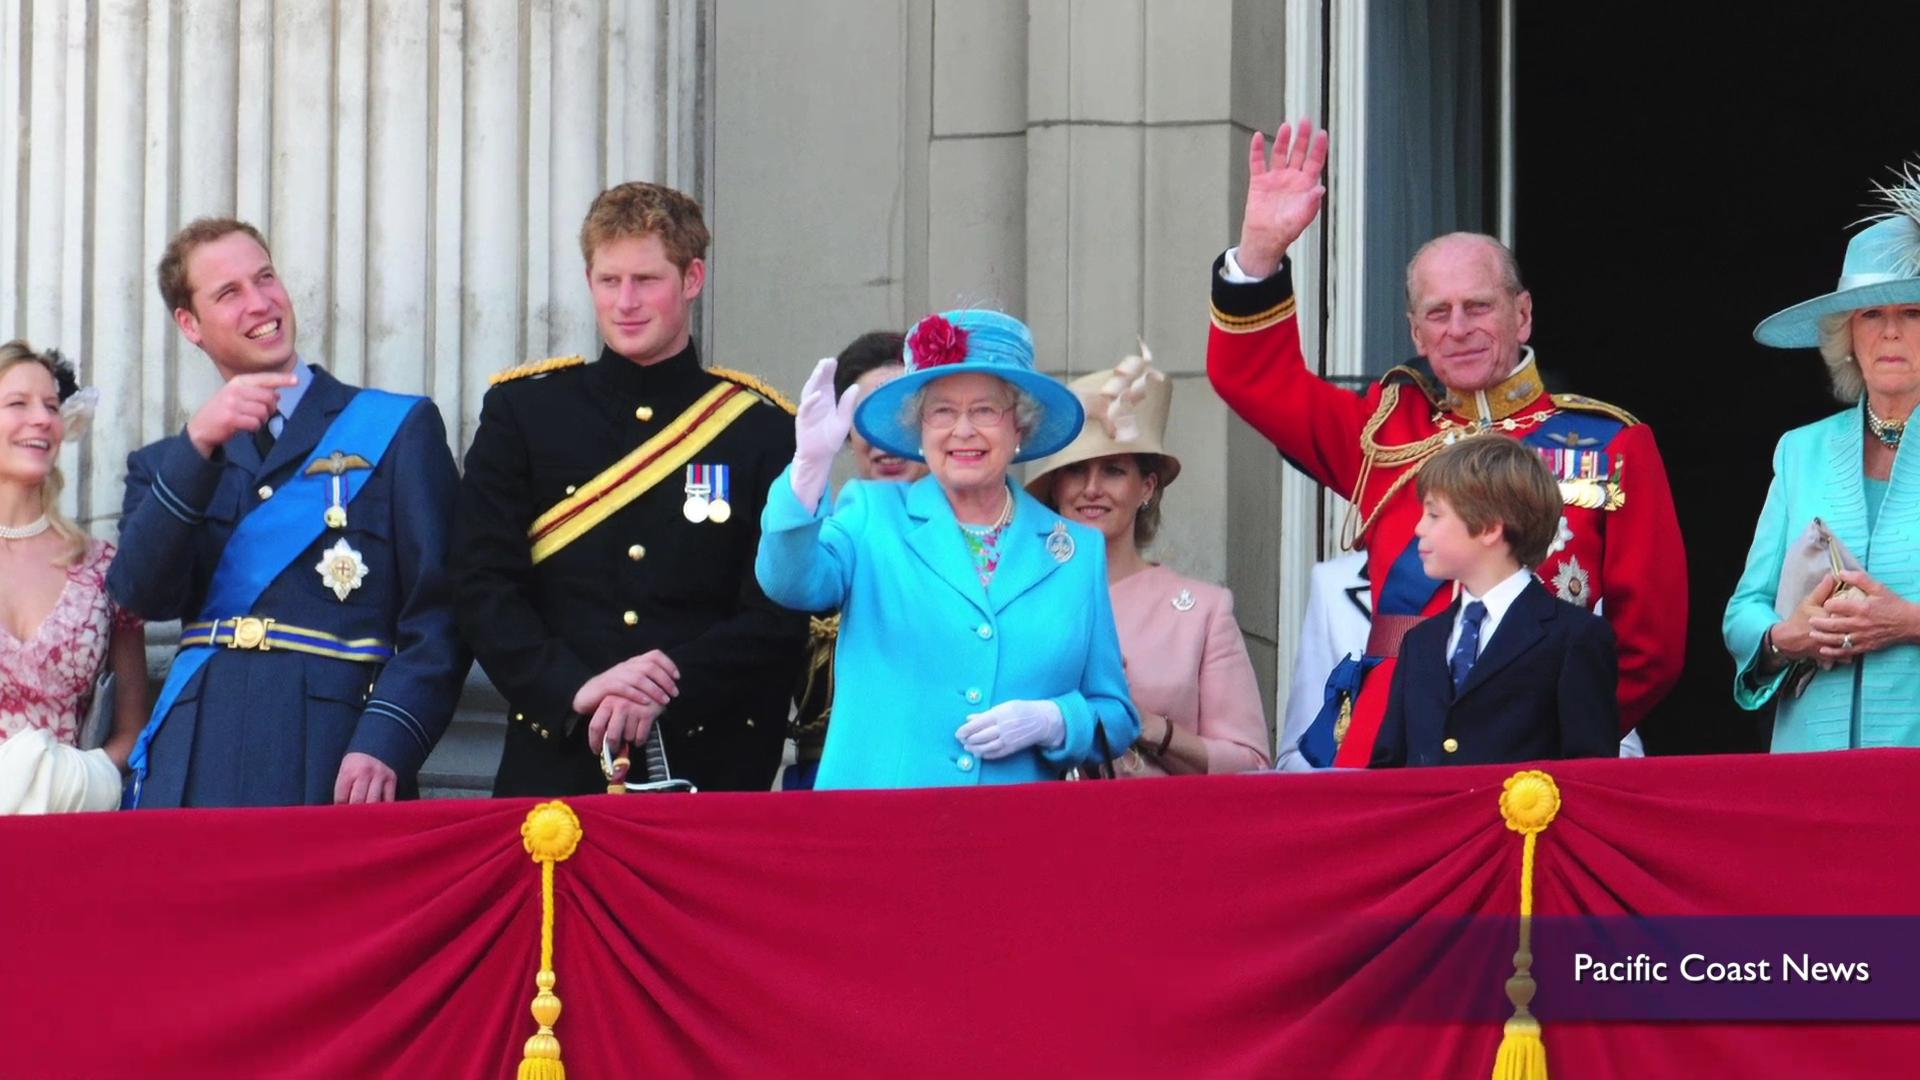 God save the Queen from crumbling Buckingham Palace